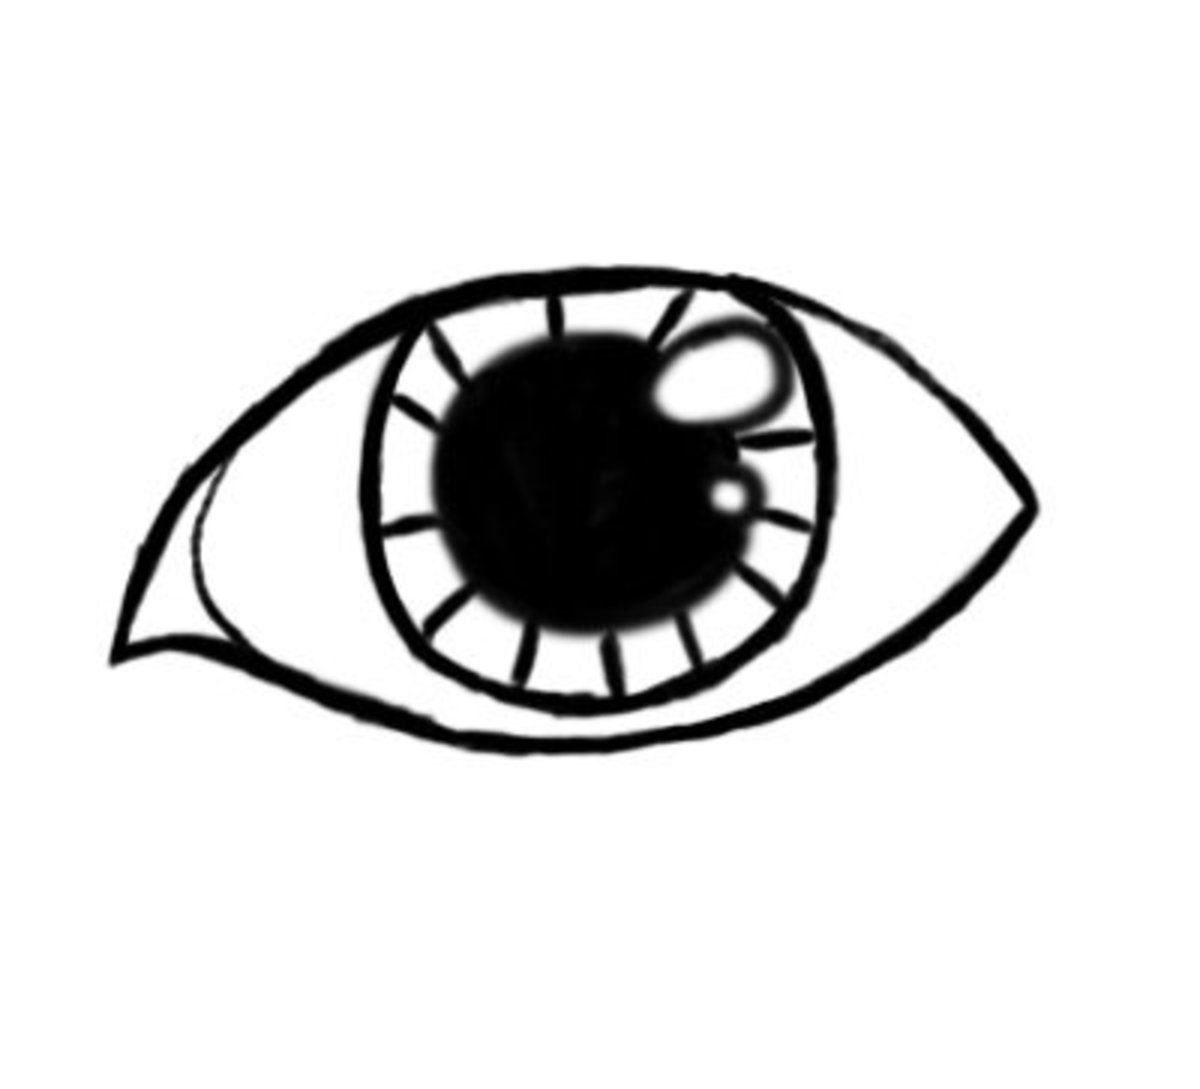 The iris should have a little detail. Draw in lines all around the eye.